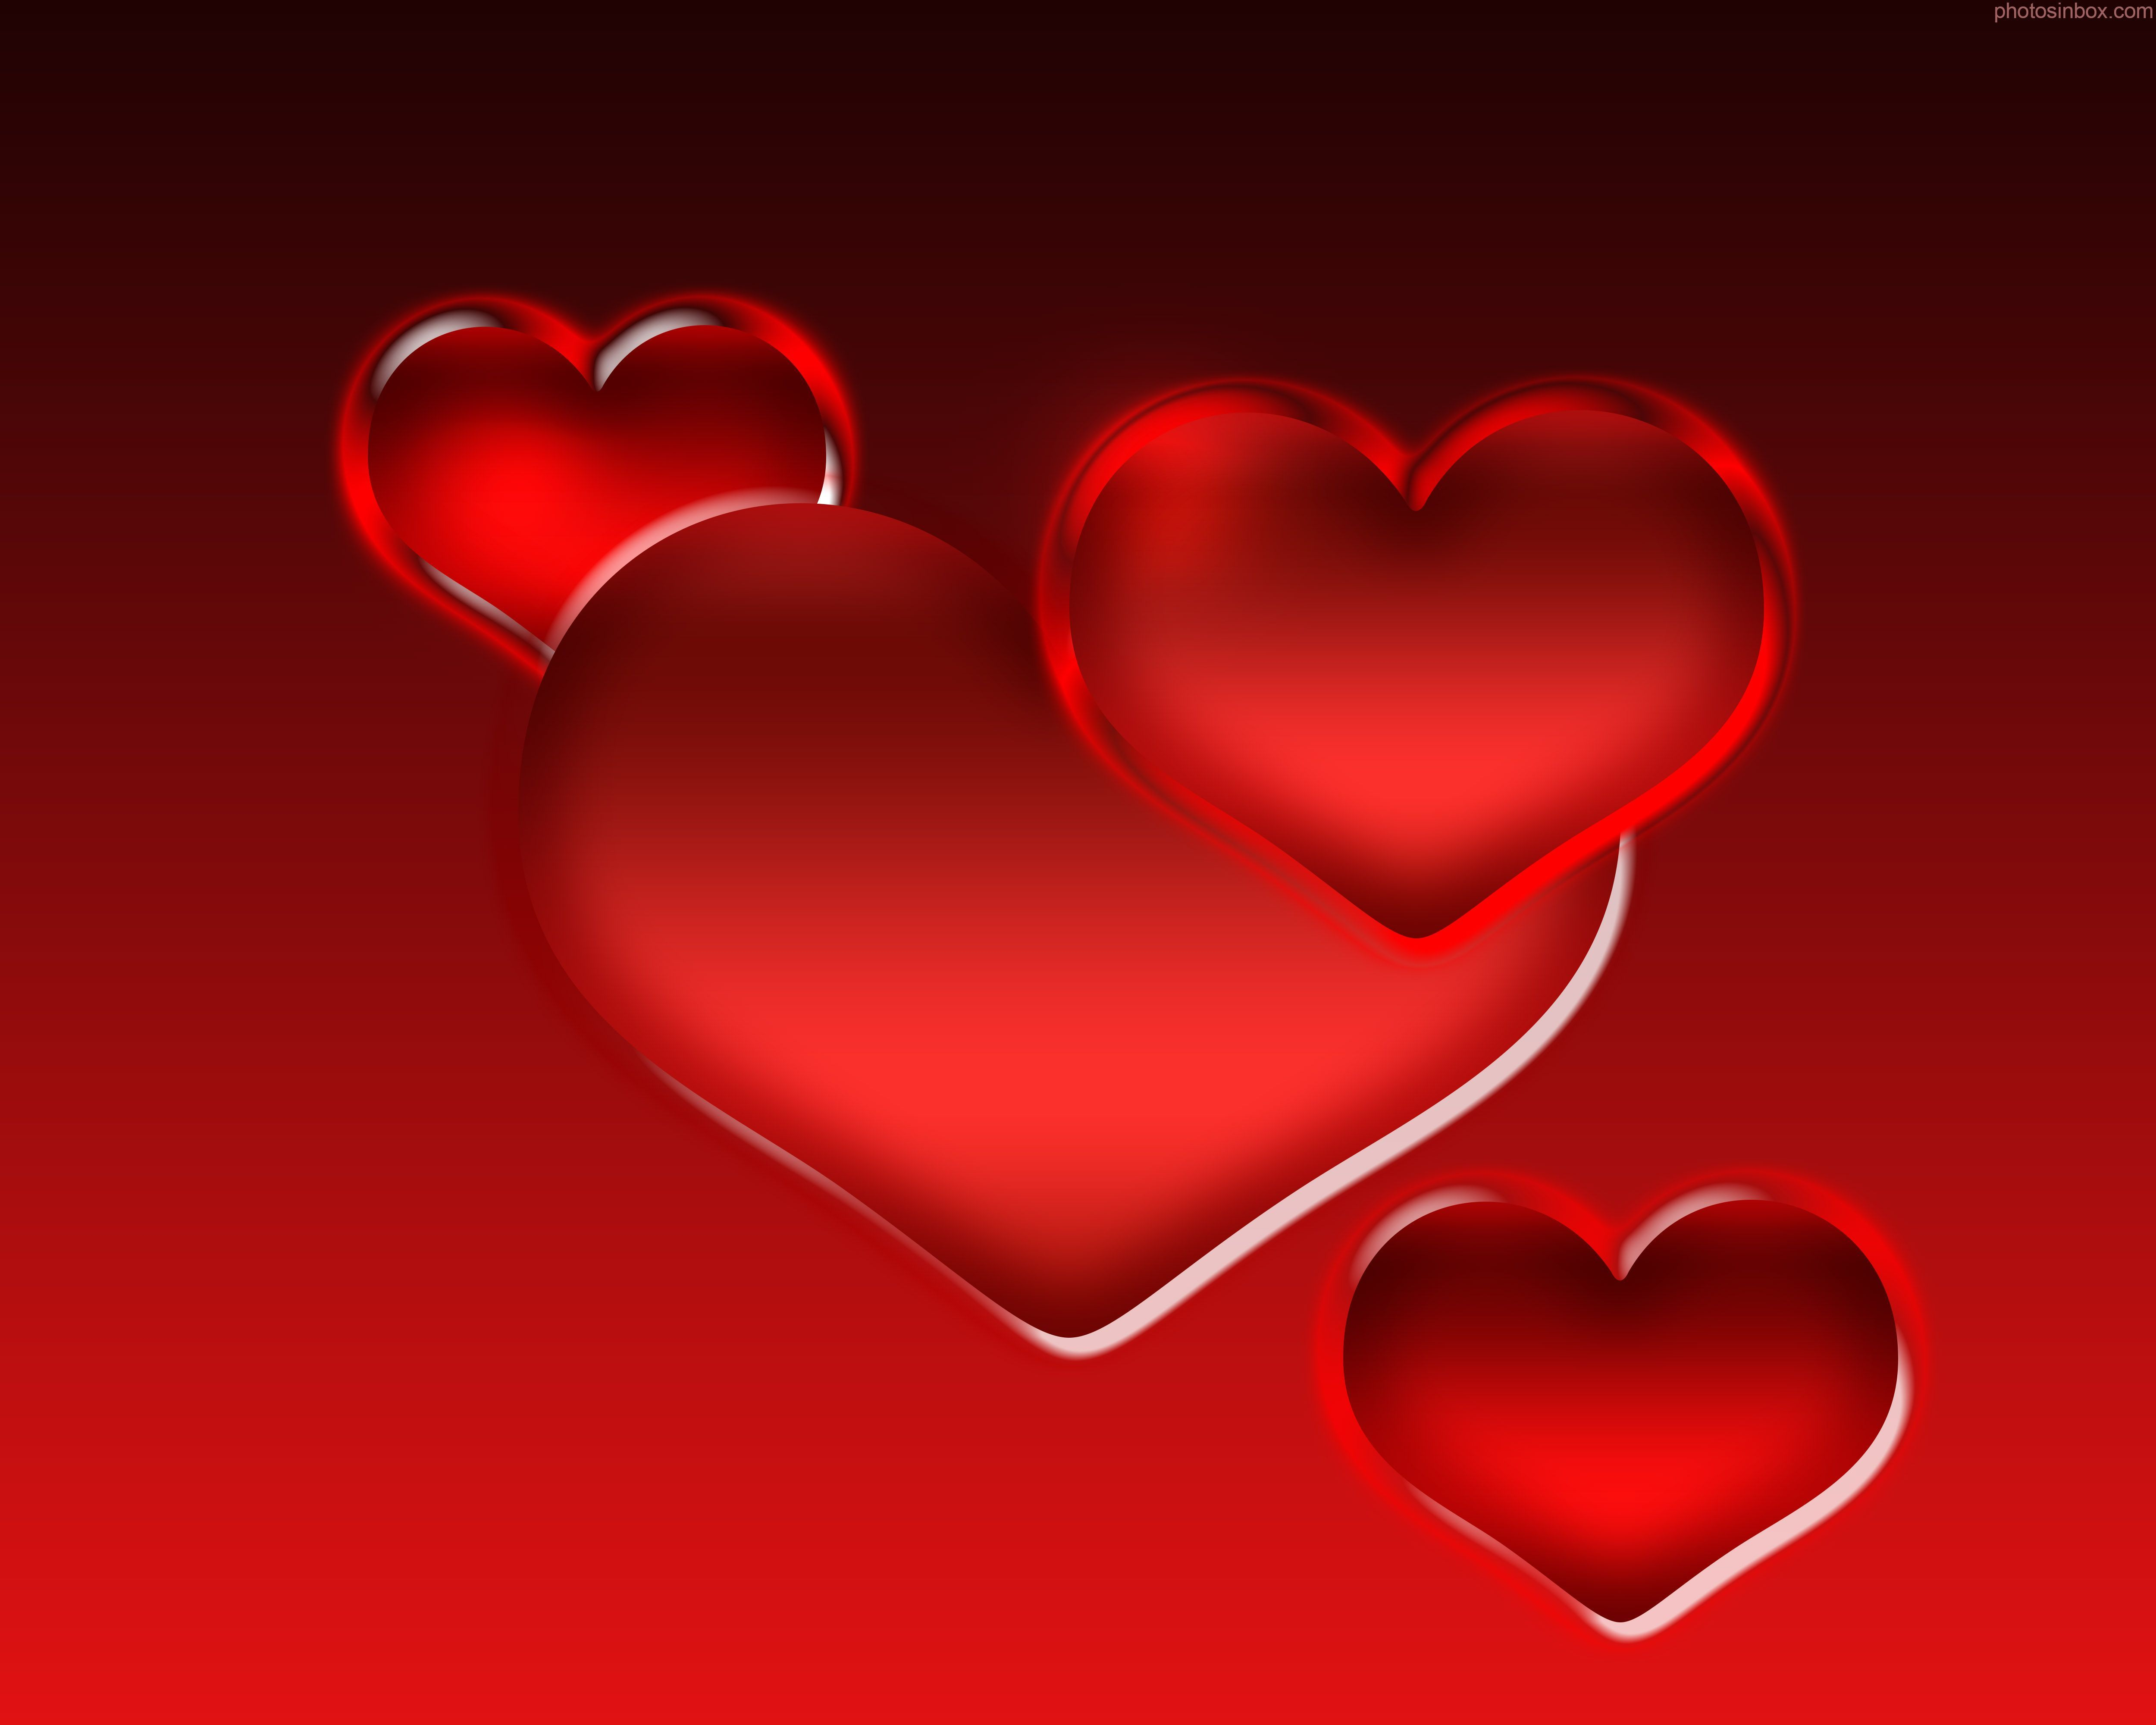 Keywords Black And Red Heart Wallpapers And Tags Heart Wallpaper Pink Heart Background Heart Background